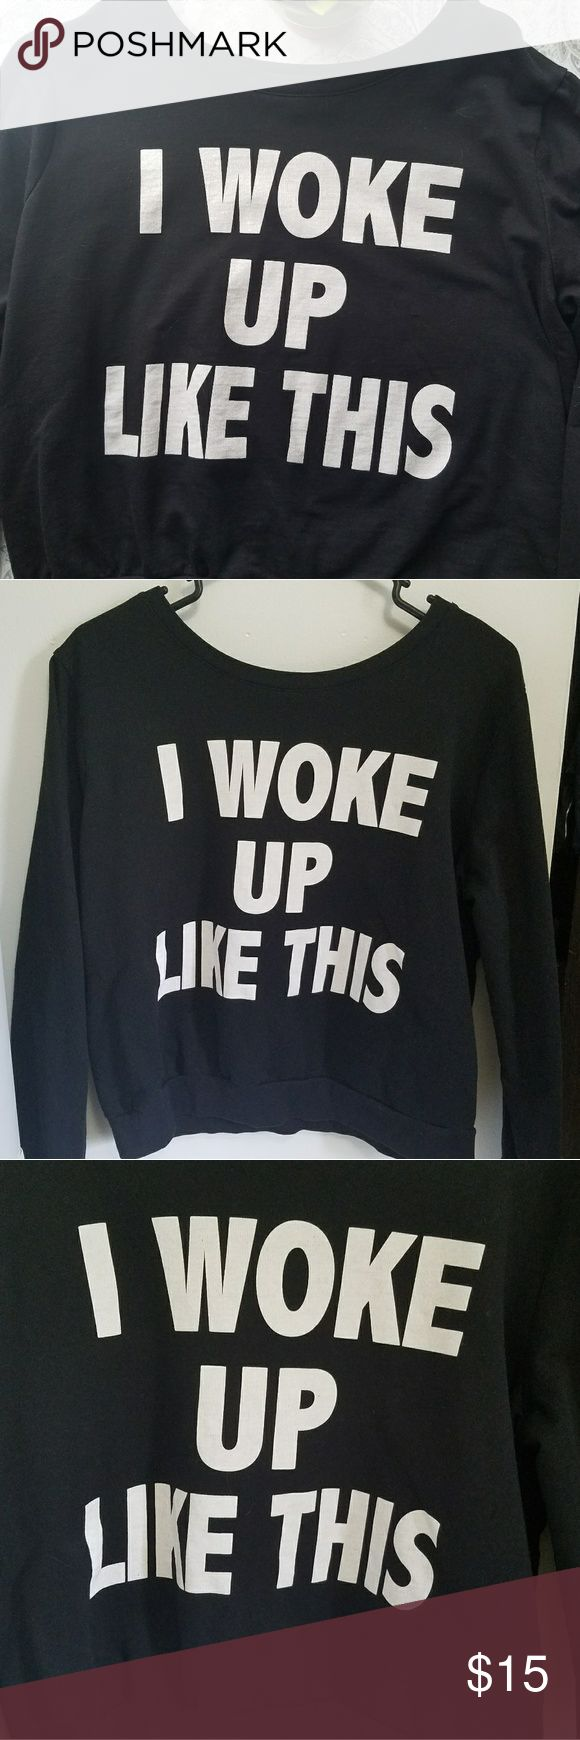 """""""I woke up like this"""" pullover sweatshirt This cotton """"I woke up like this"""" pullover sweatshirt is the perfect addition to any casual wardrobe.  Solid black with white writing, the sweatshirt measures 21 inches long and fits slightly oversized/baggy. none Sweaters Crew & Scoop Necks"""